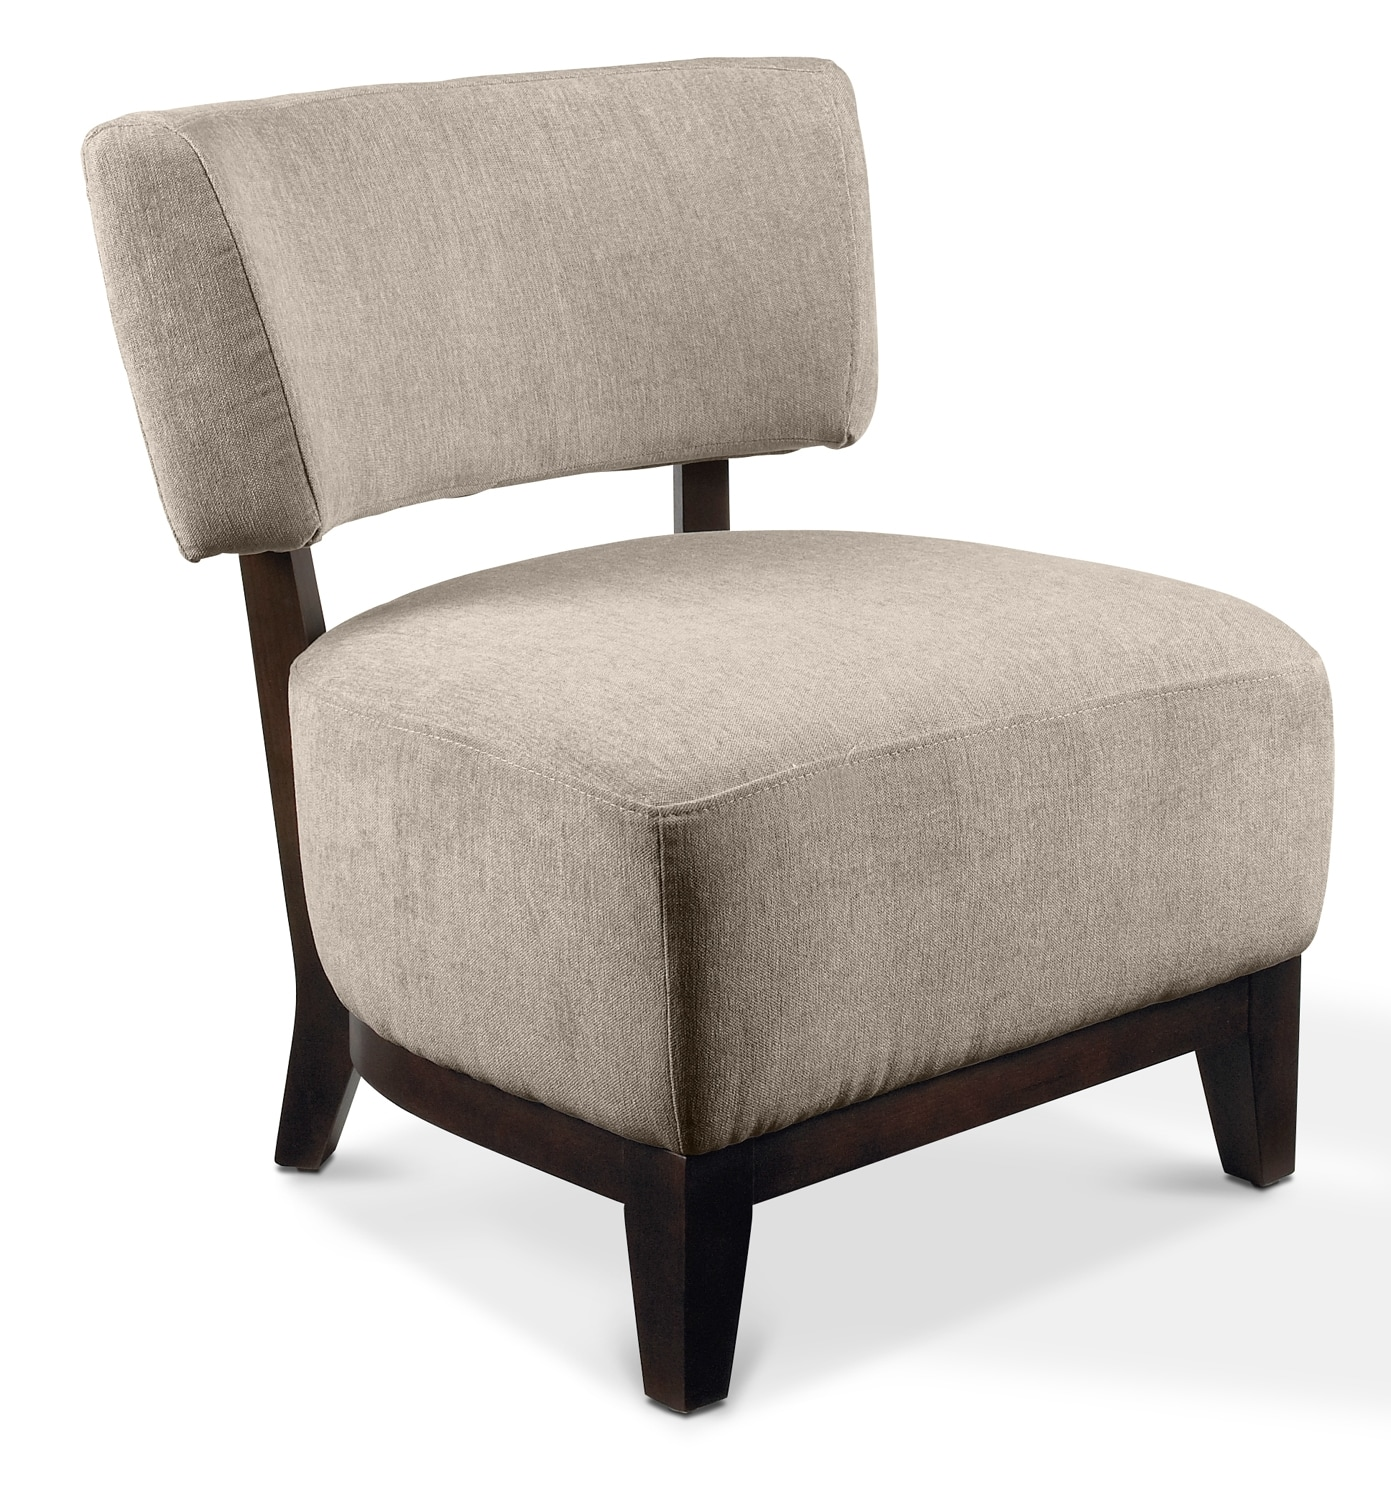 Alfie Accent Chair - Beige